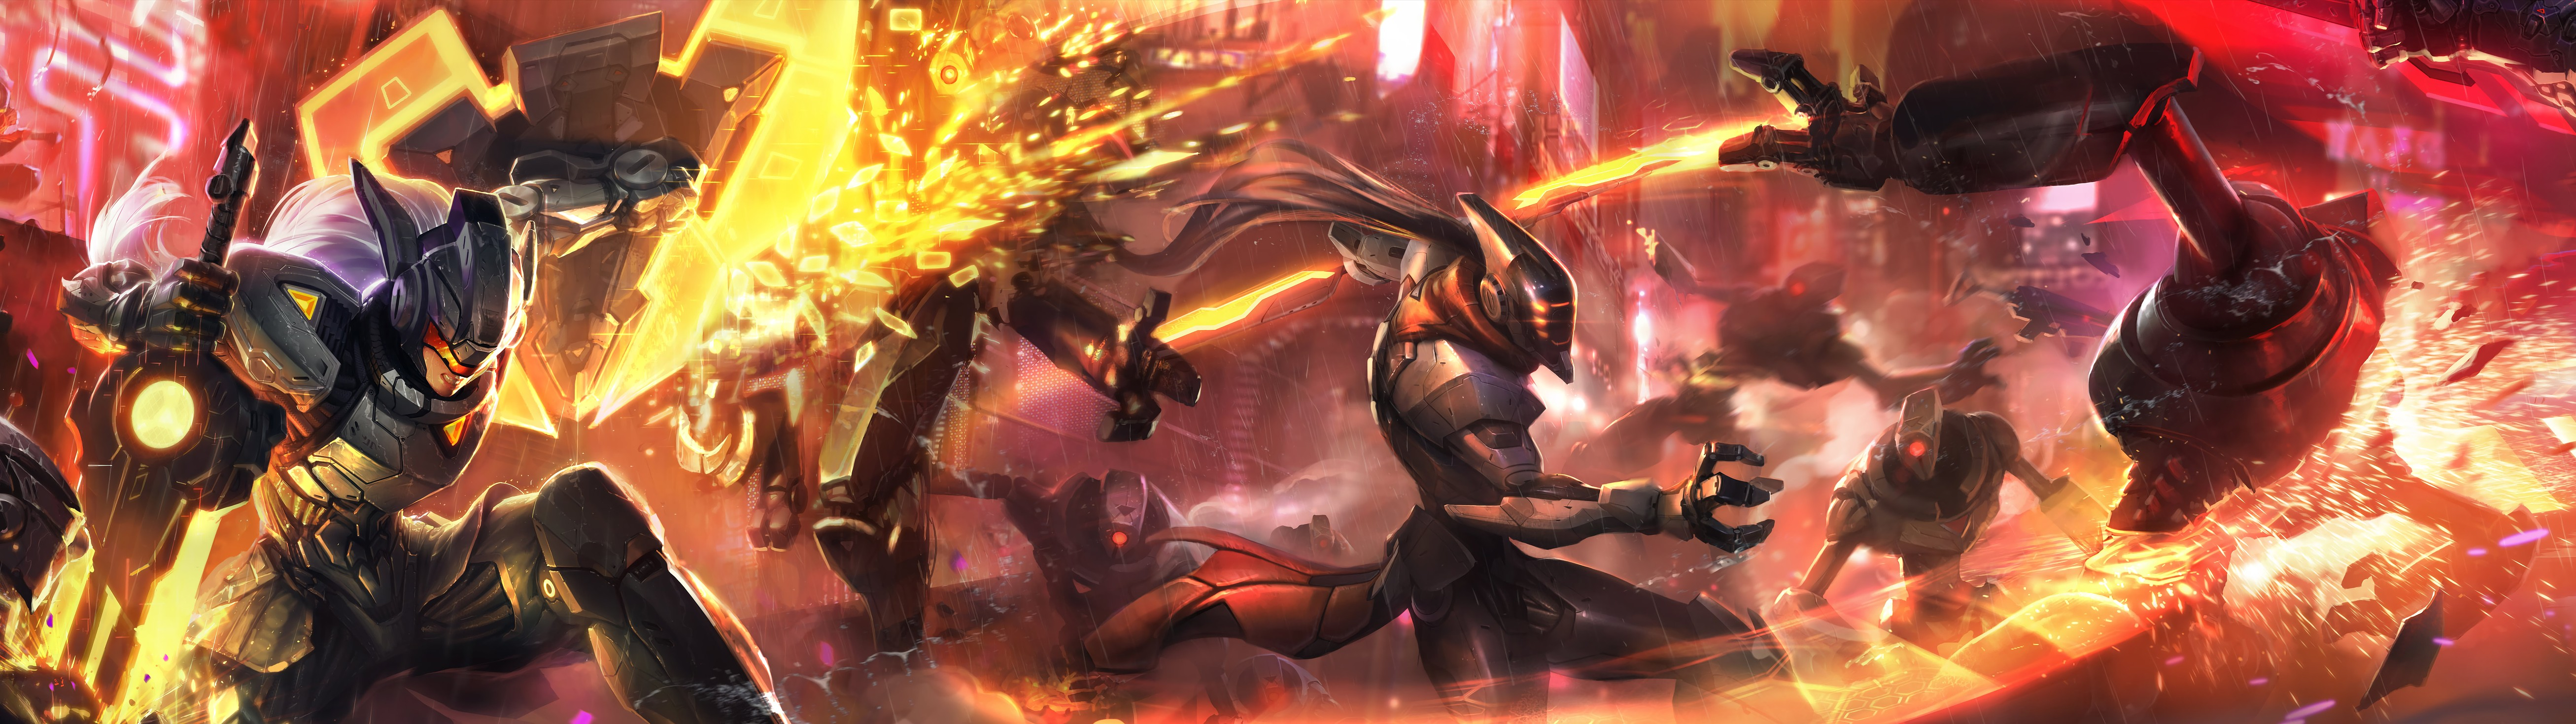 Project Leona Master Yi Hd Wallpaper Background Official